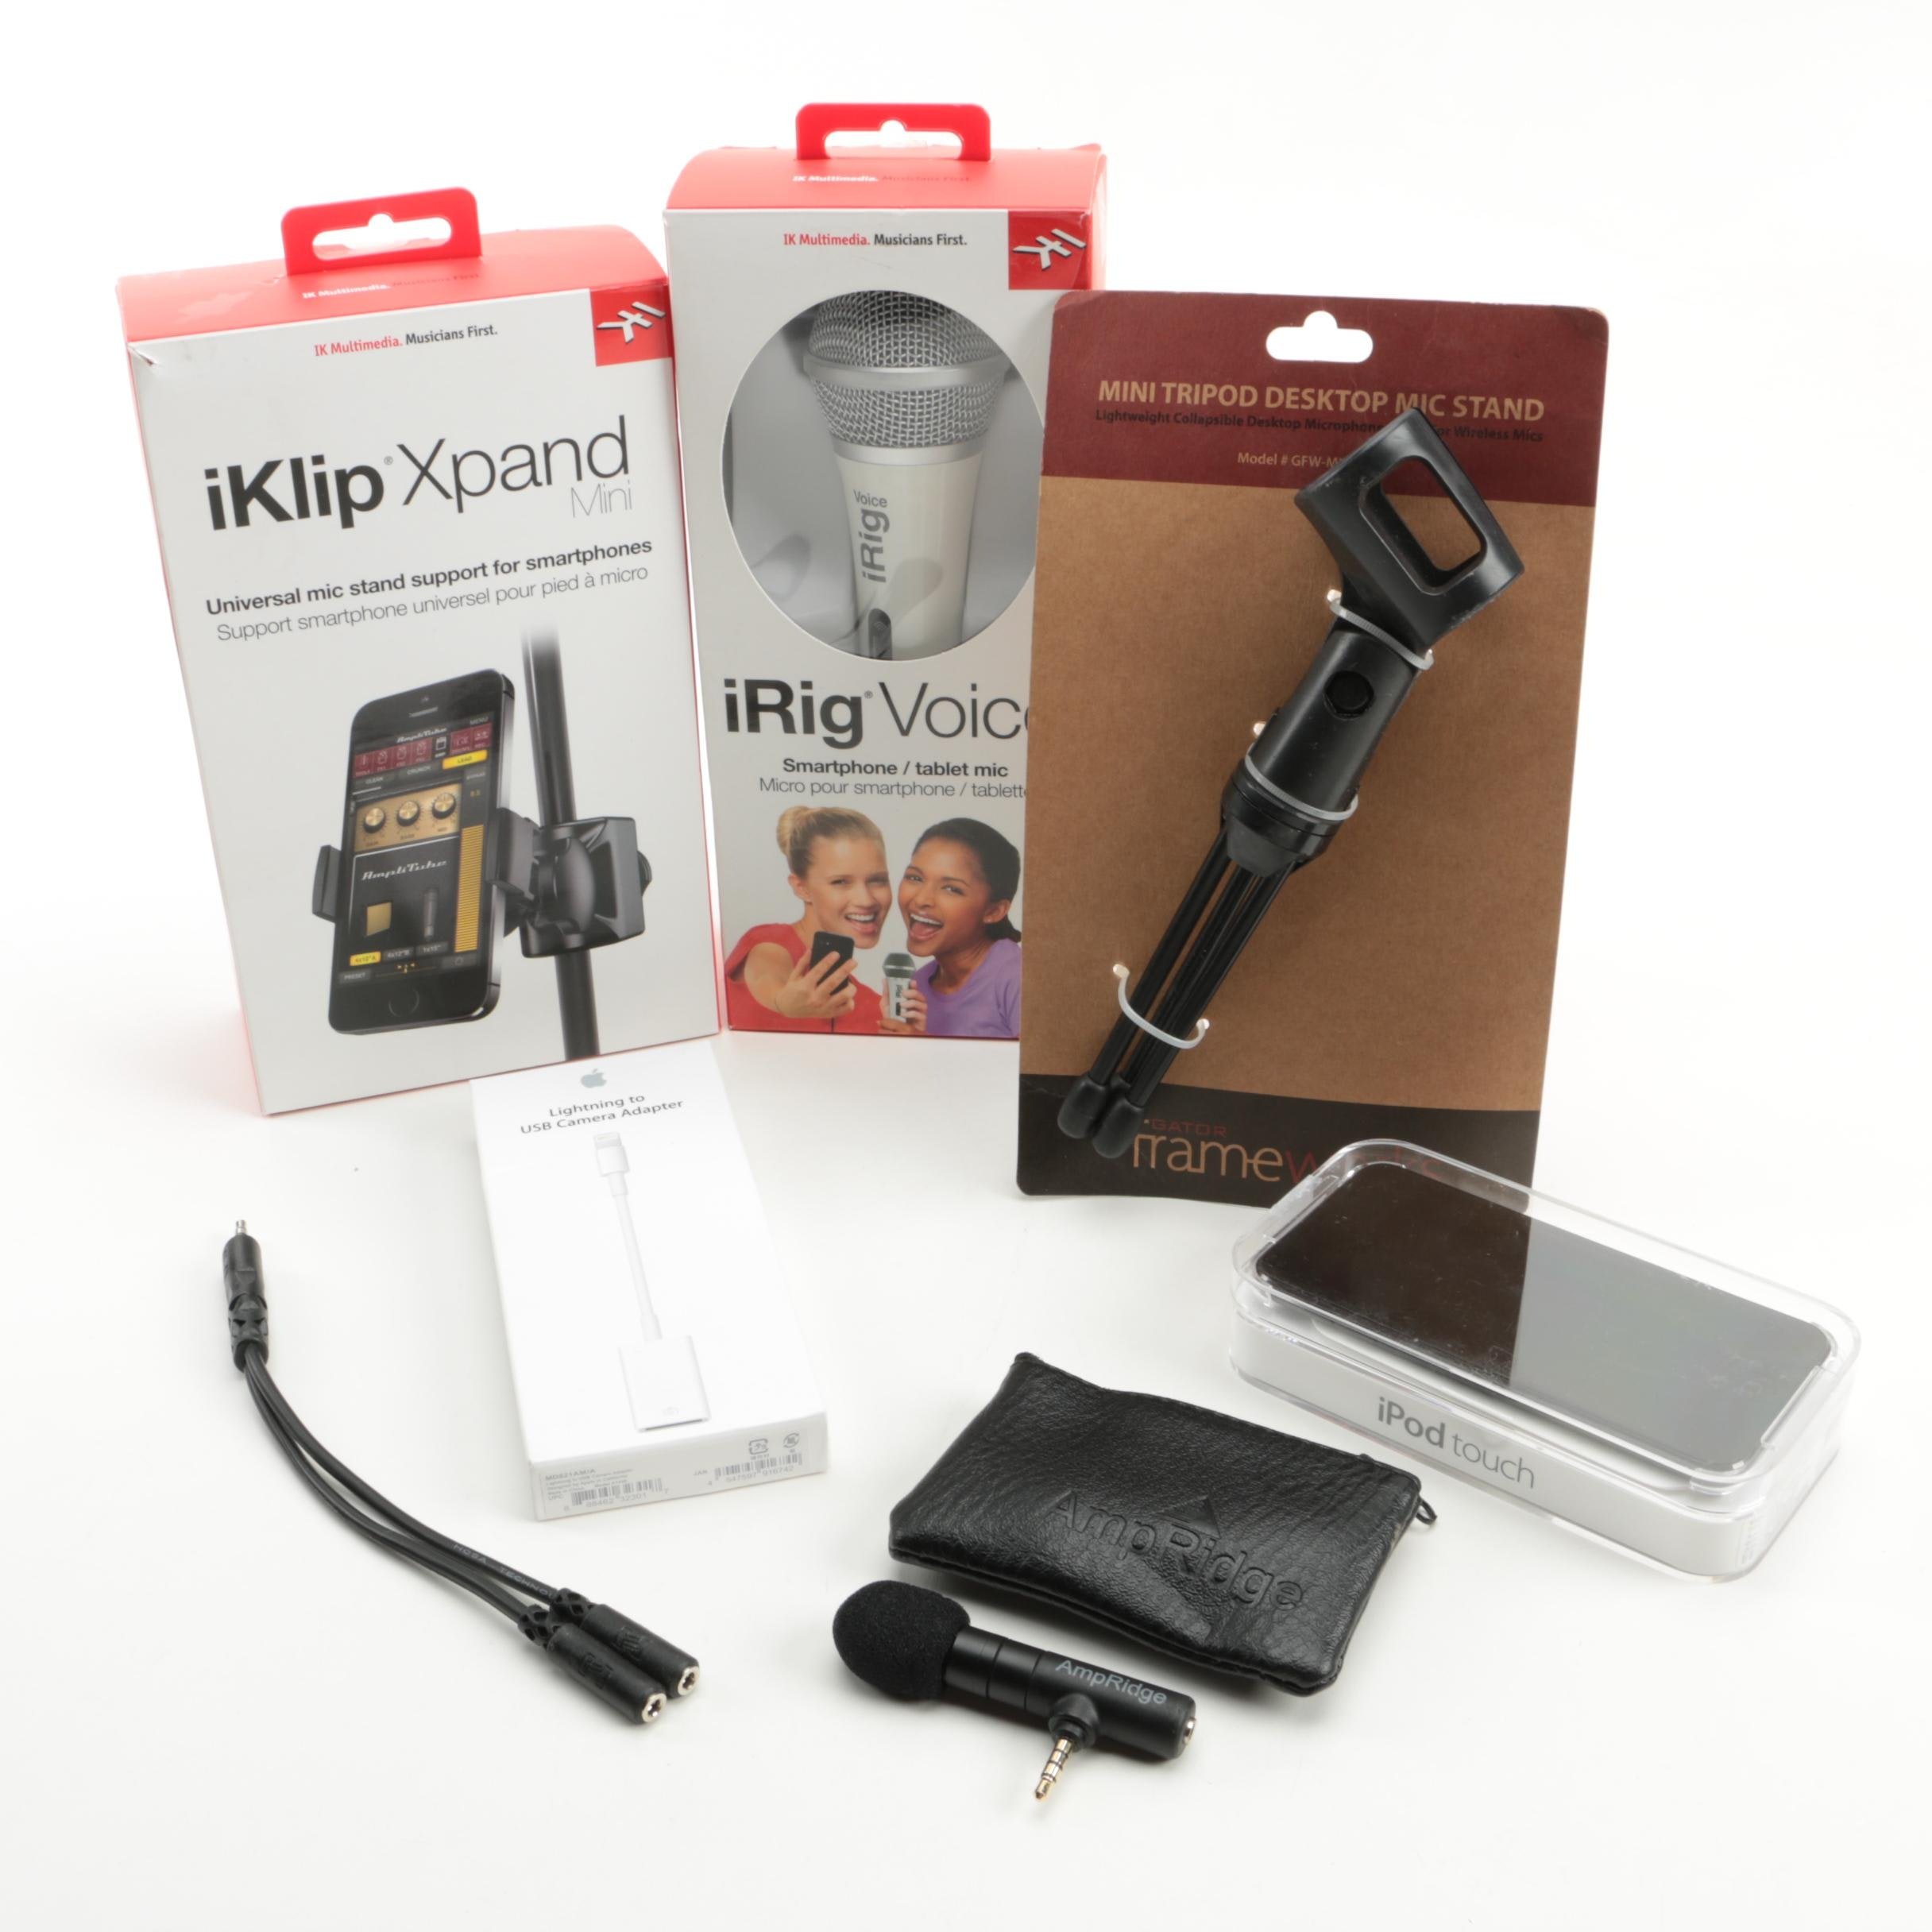 iPod Touch with iRig Mic, iKlip Xpand, Stand, and More